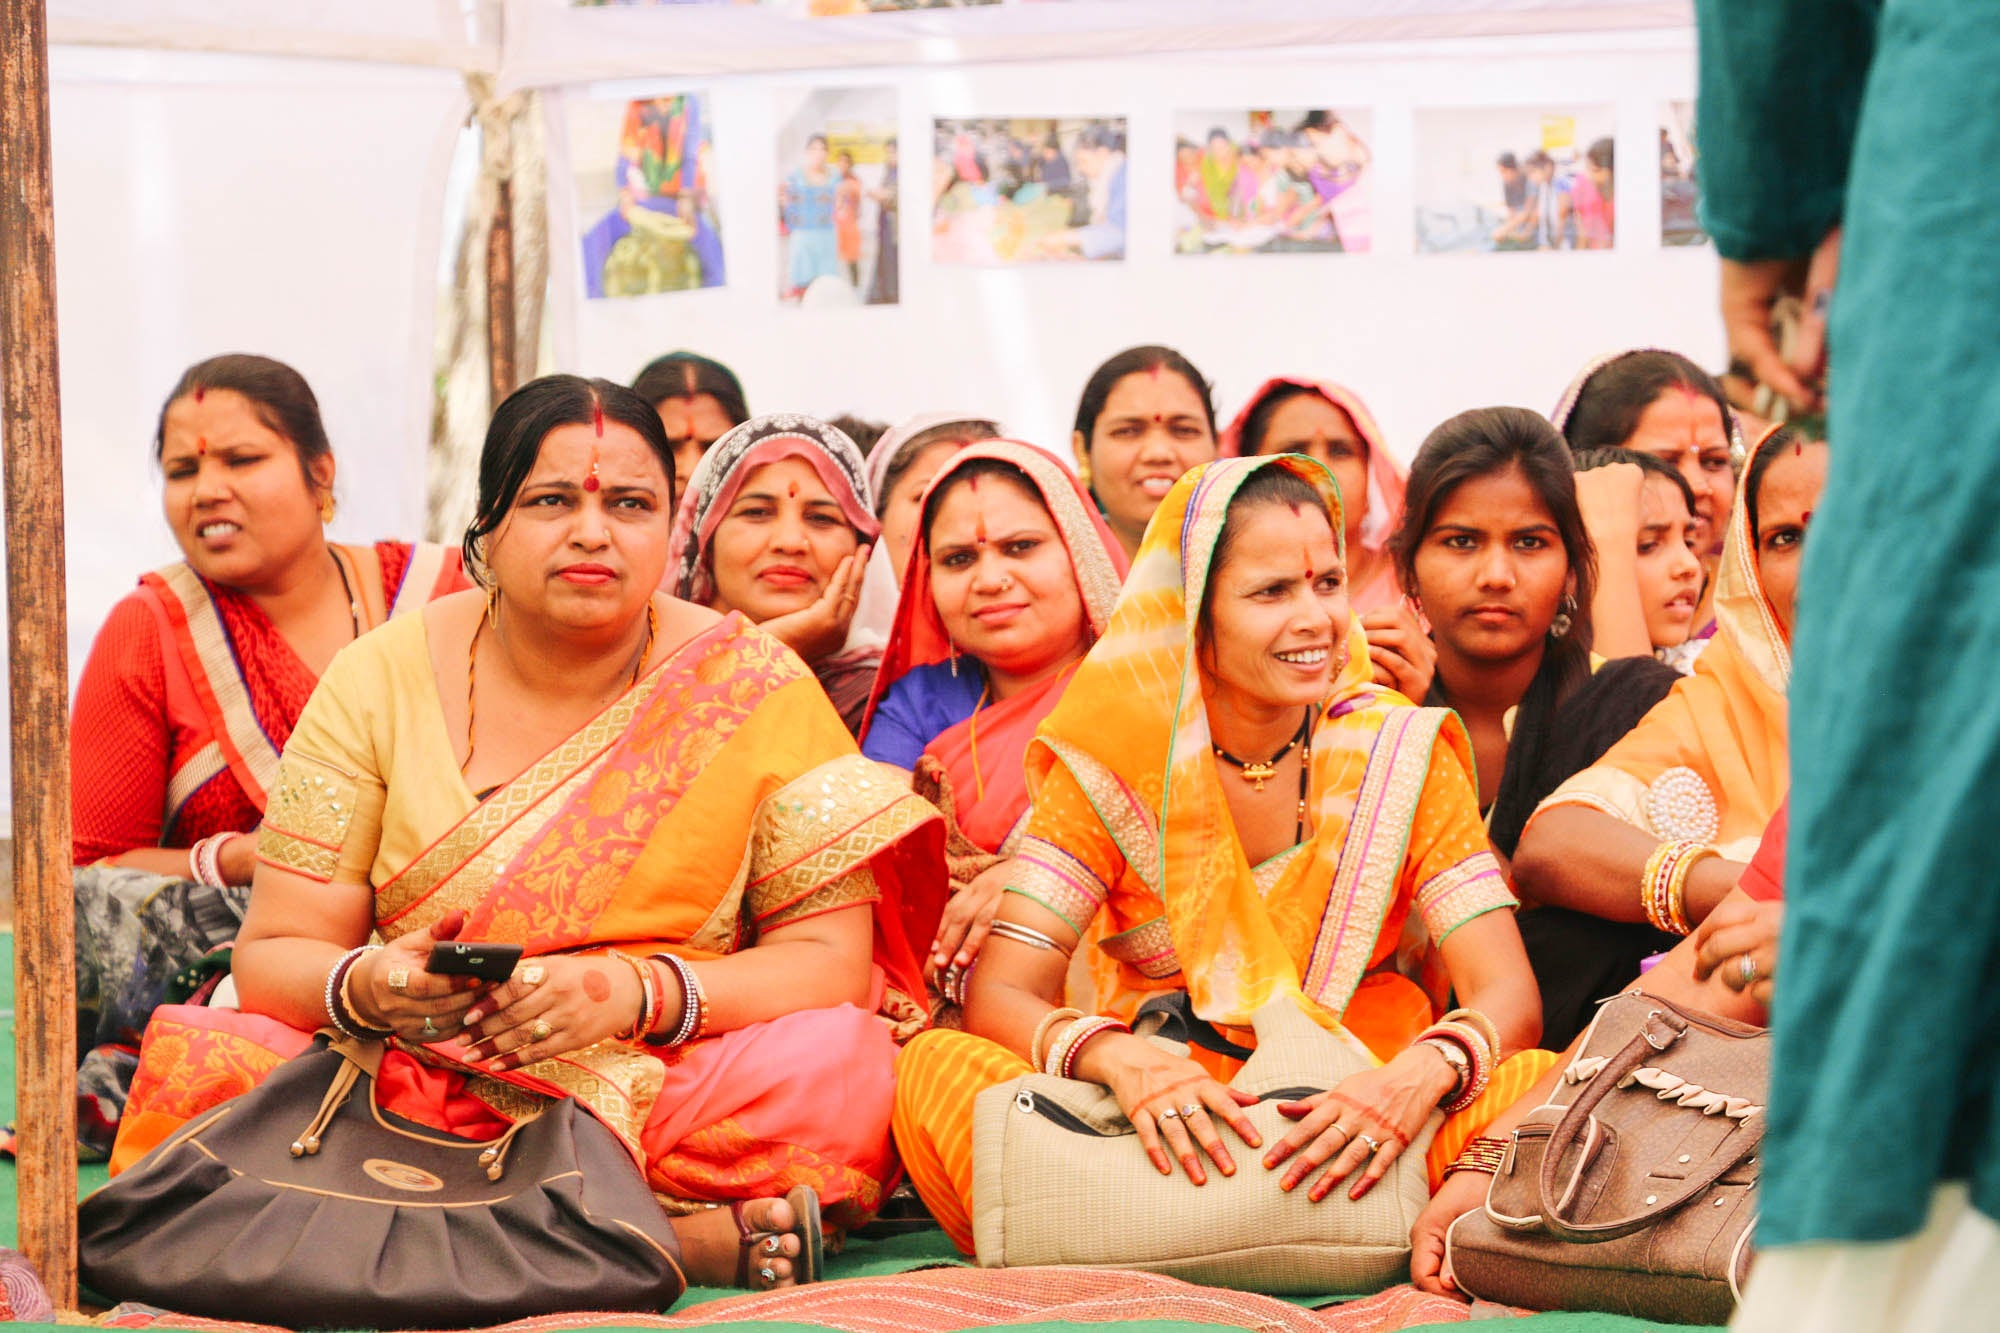 Anchal Project artisans in Ajmer, India